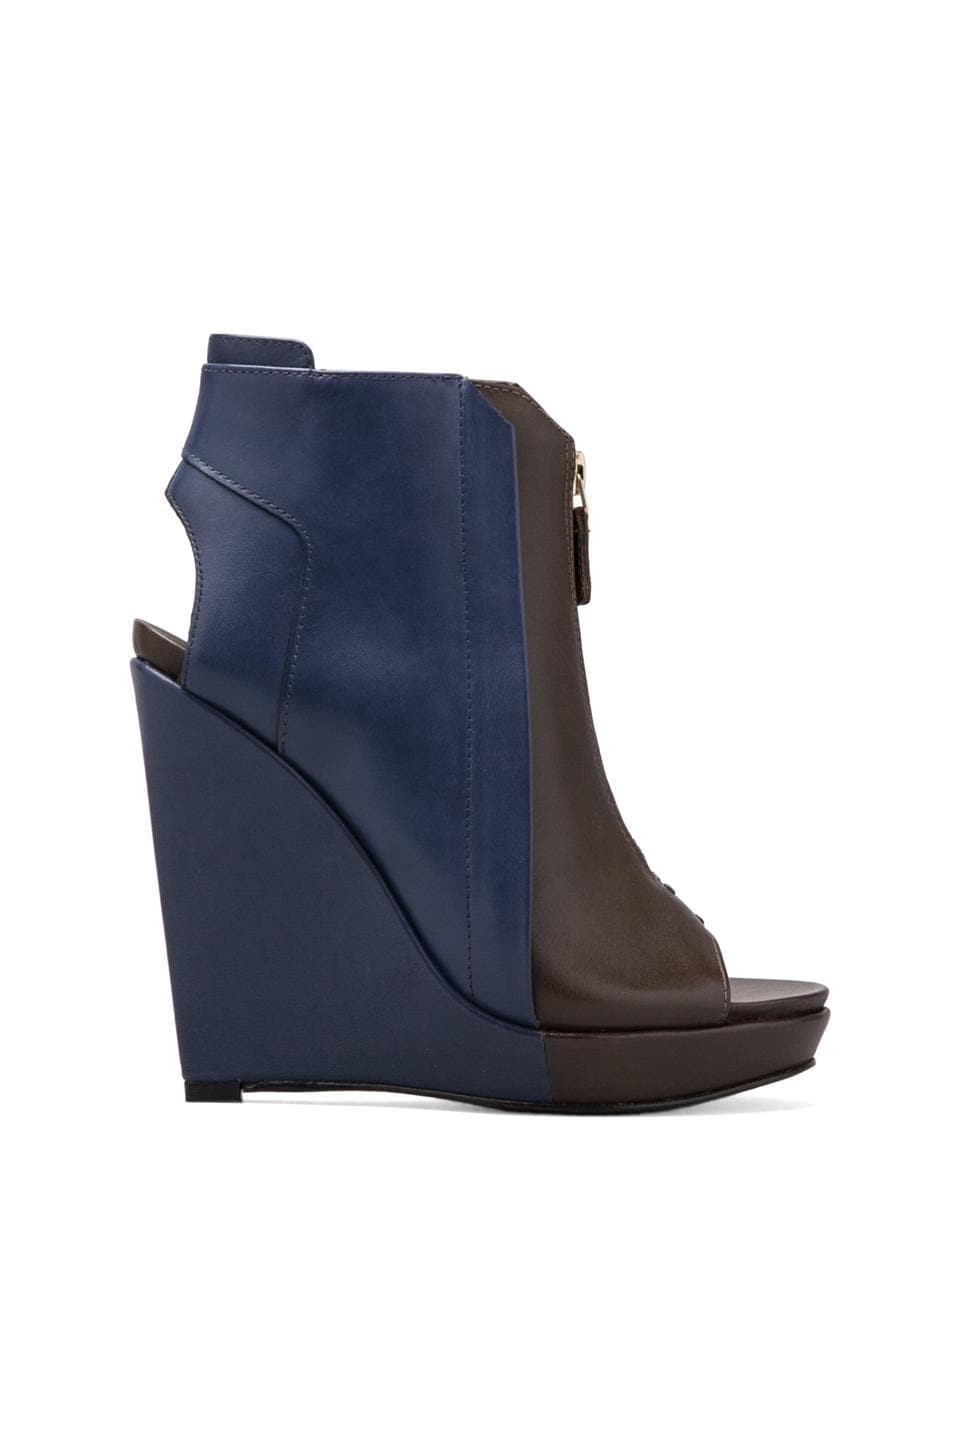 DEREK LAM 10 CROSBY Gen Wedge in Brown/Navy